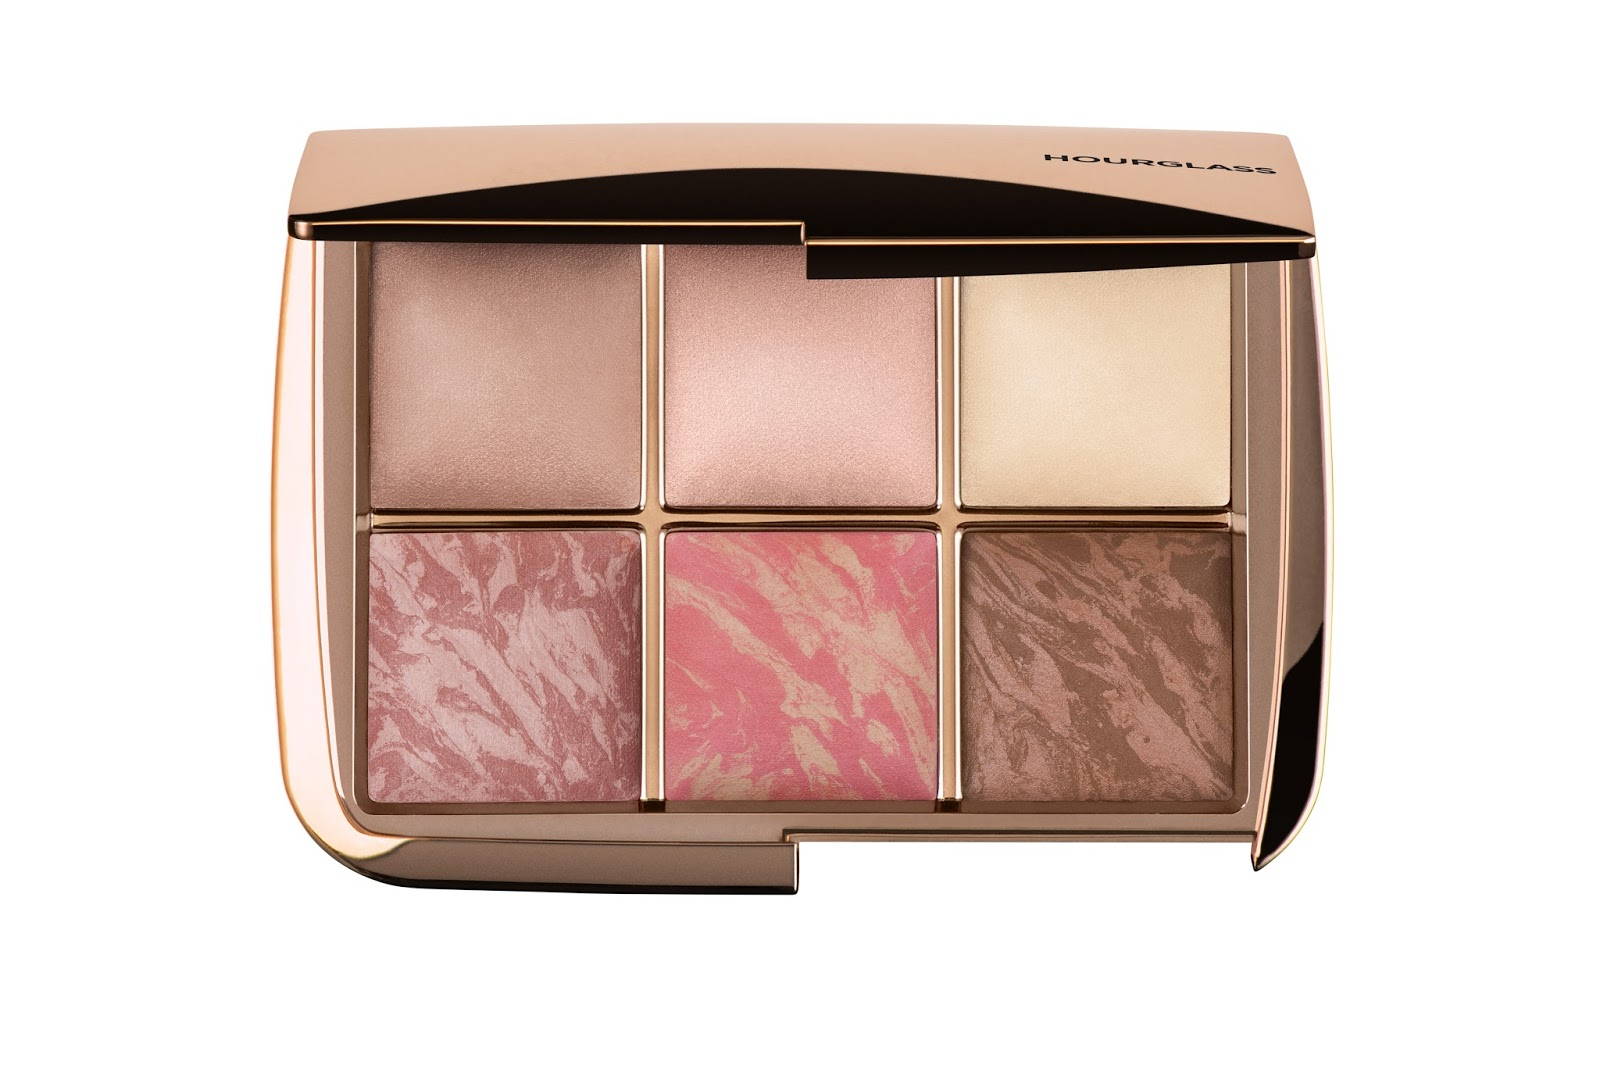 Hourglass Ambient Lighting Edit Palette Back In Stock At SpaceNK